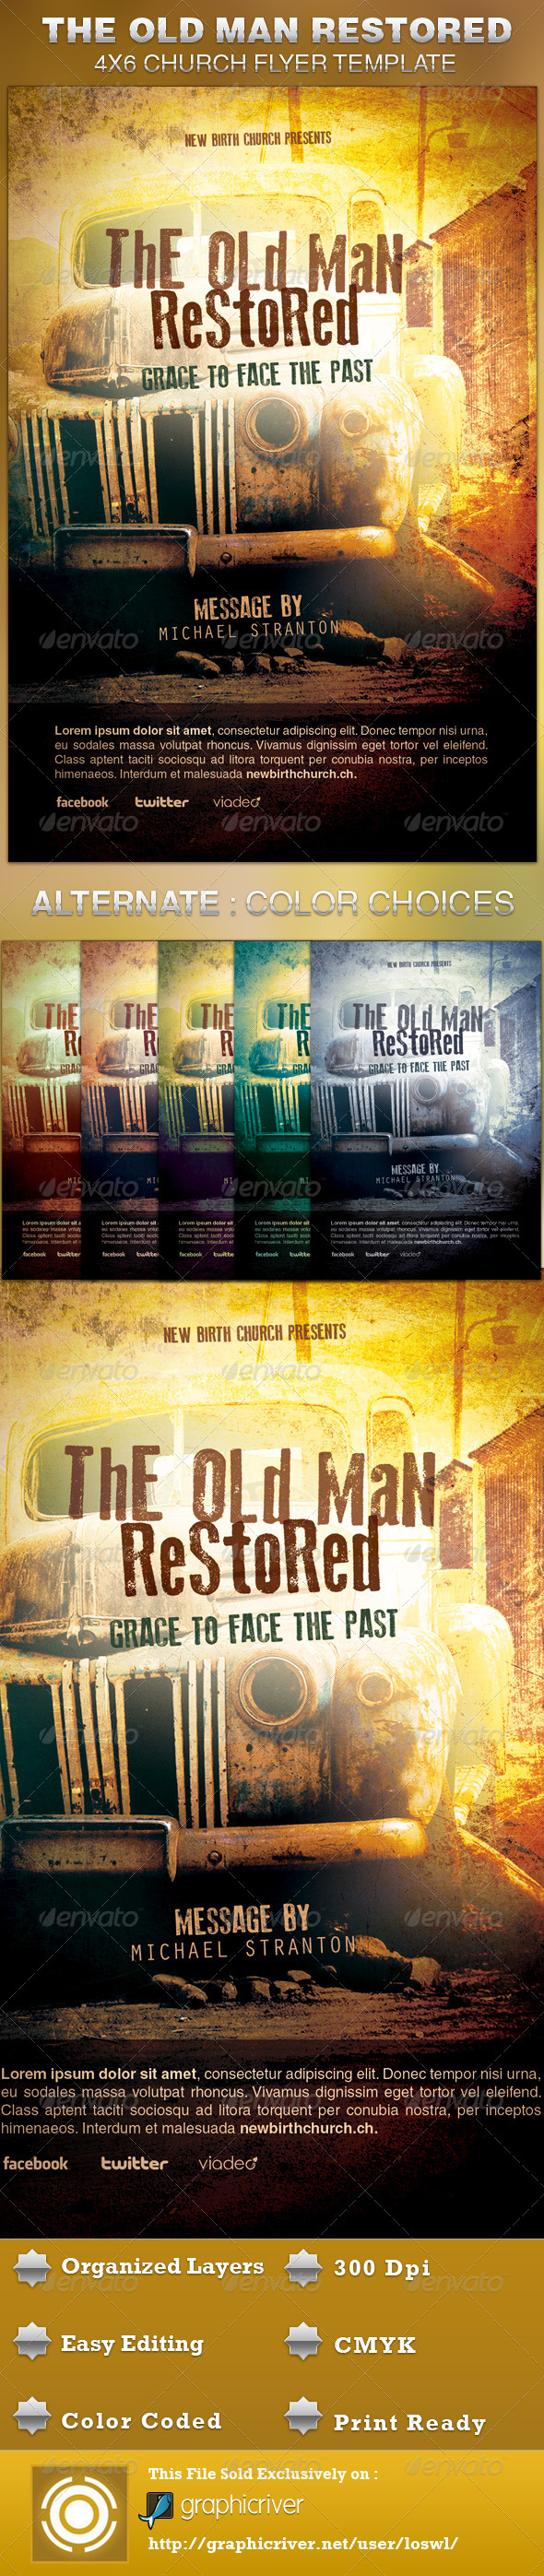 Old Man Restored Church Flyer Template - Church Flyers